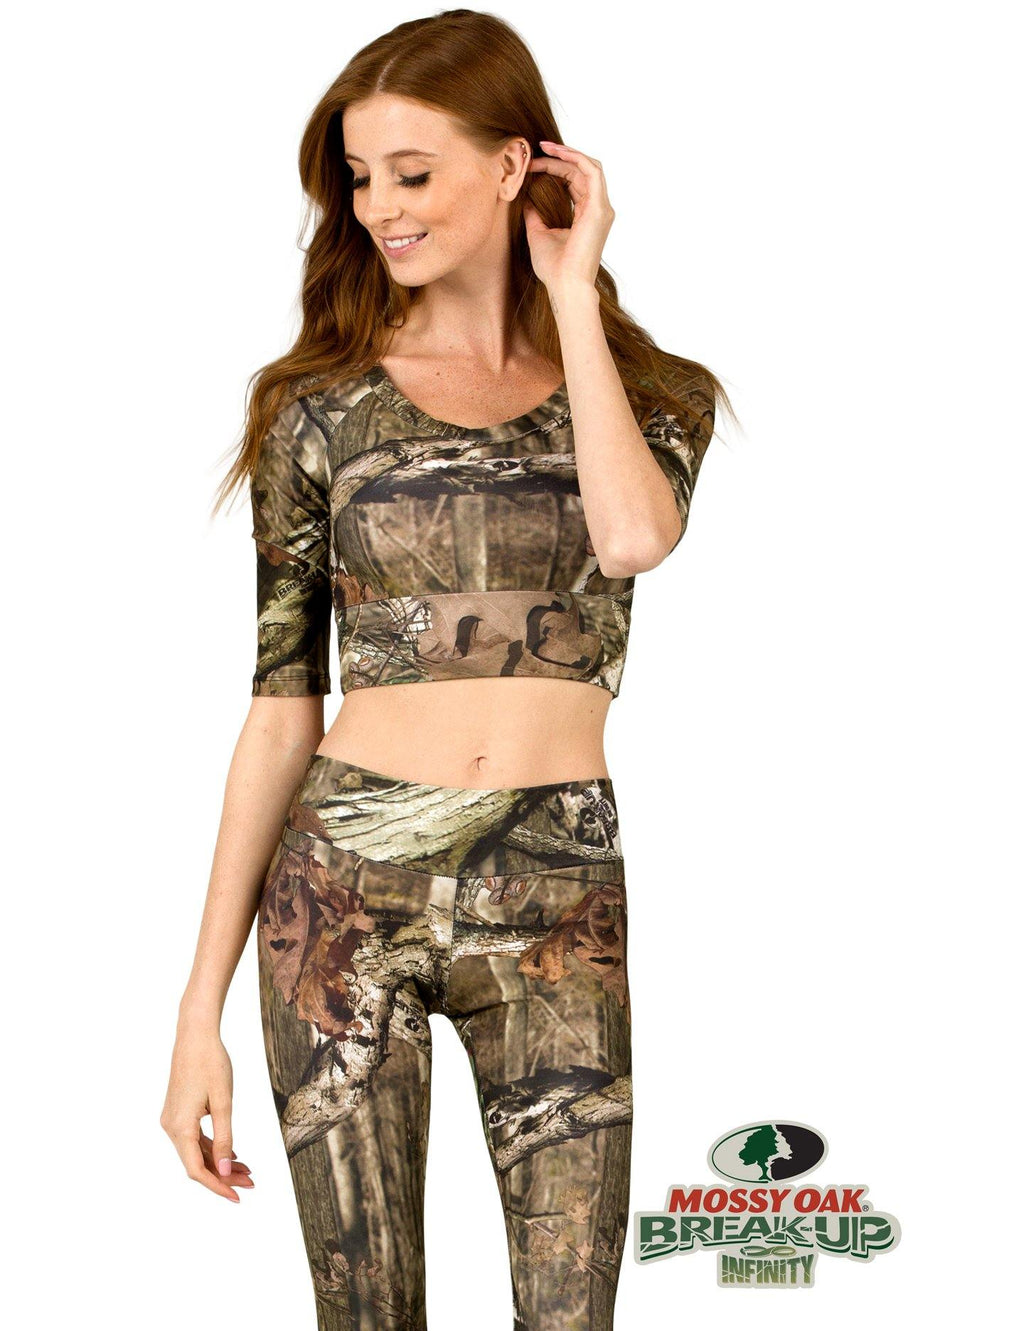 Apsara Cropped Top, Mossy Oak Break-Up Infinity